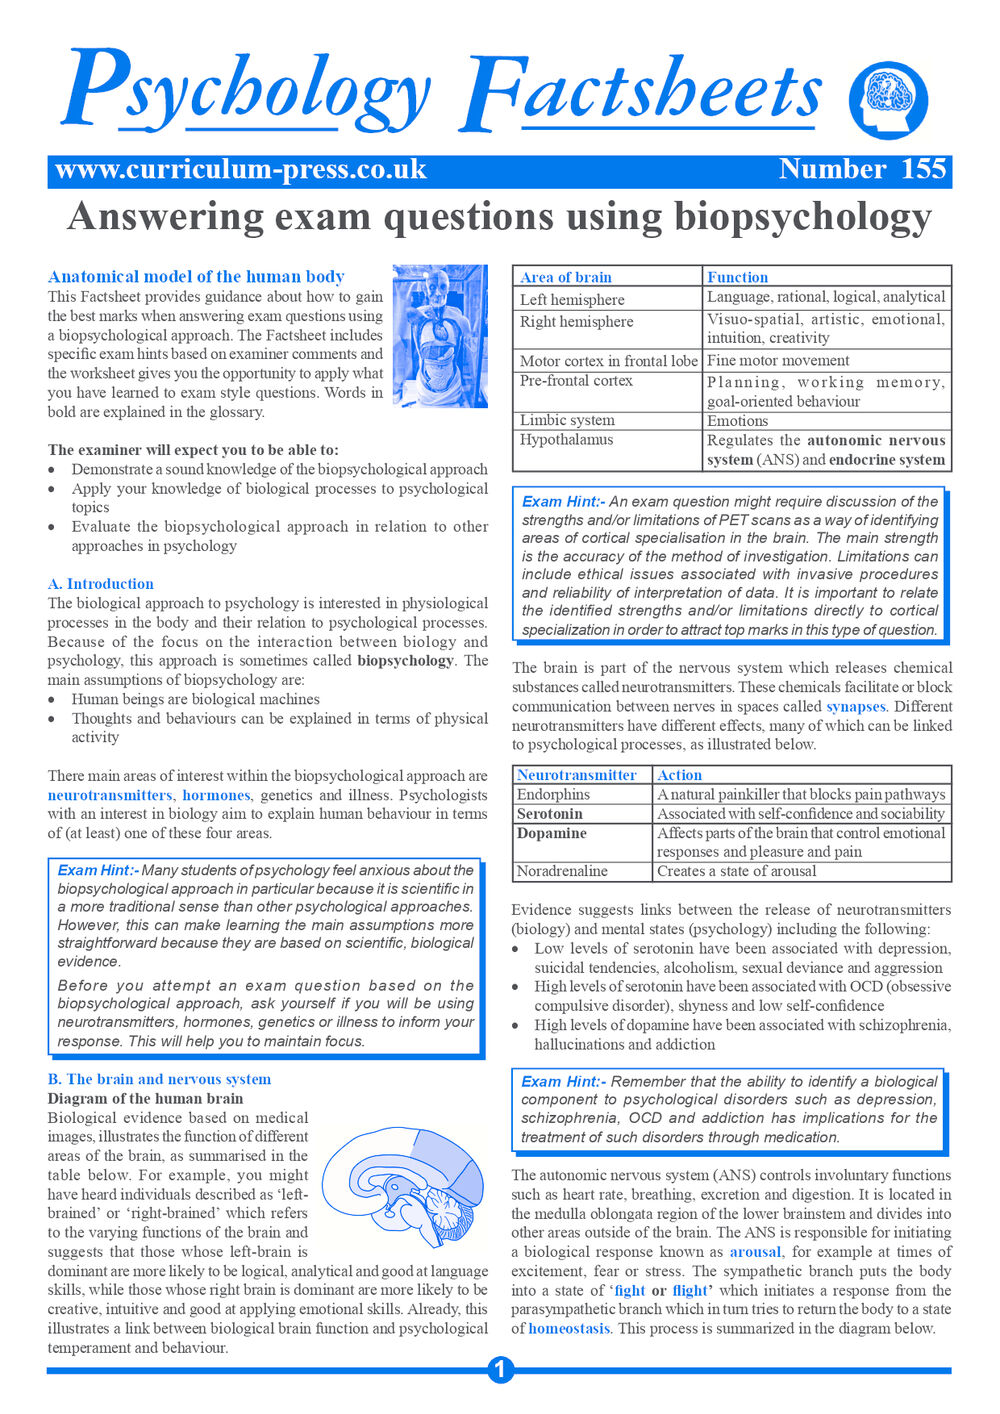 Curriculum Press - Answering Exam Questions Using Biopsychology